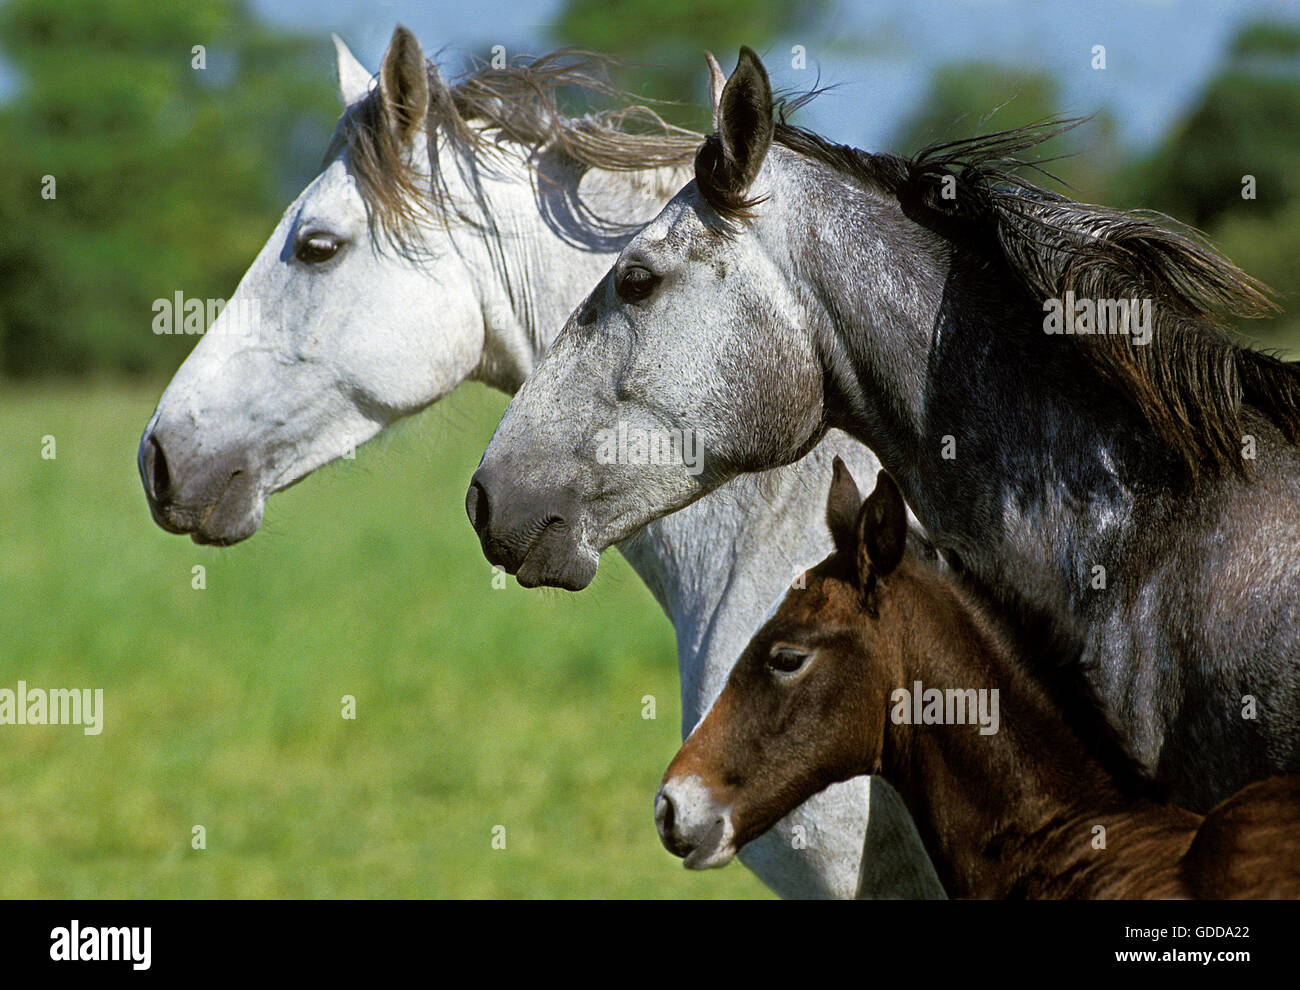 Lusitano Horse, Mare with Foal - Stock Image